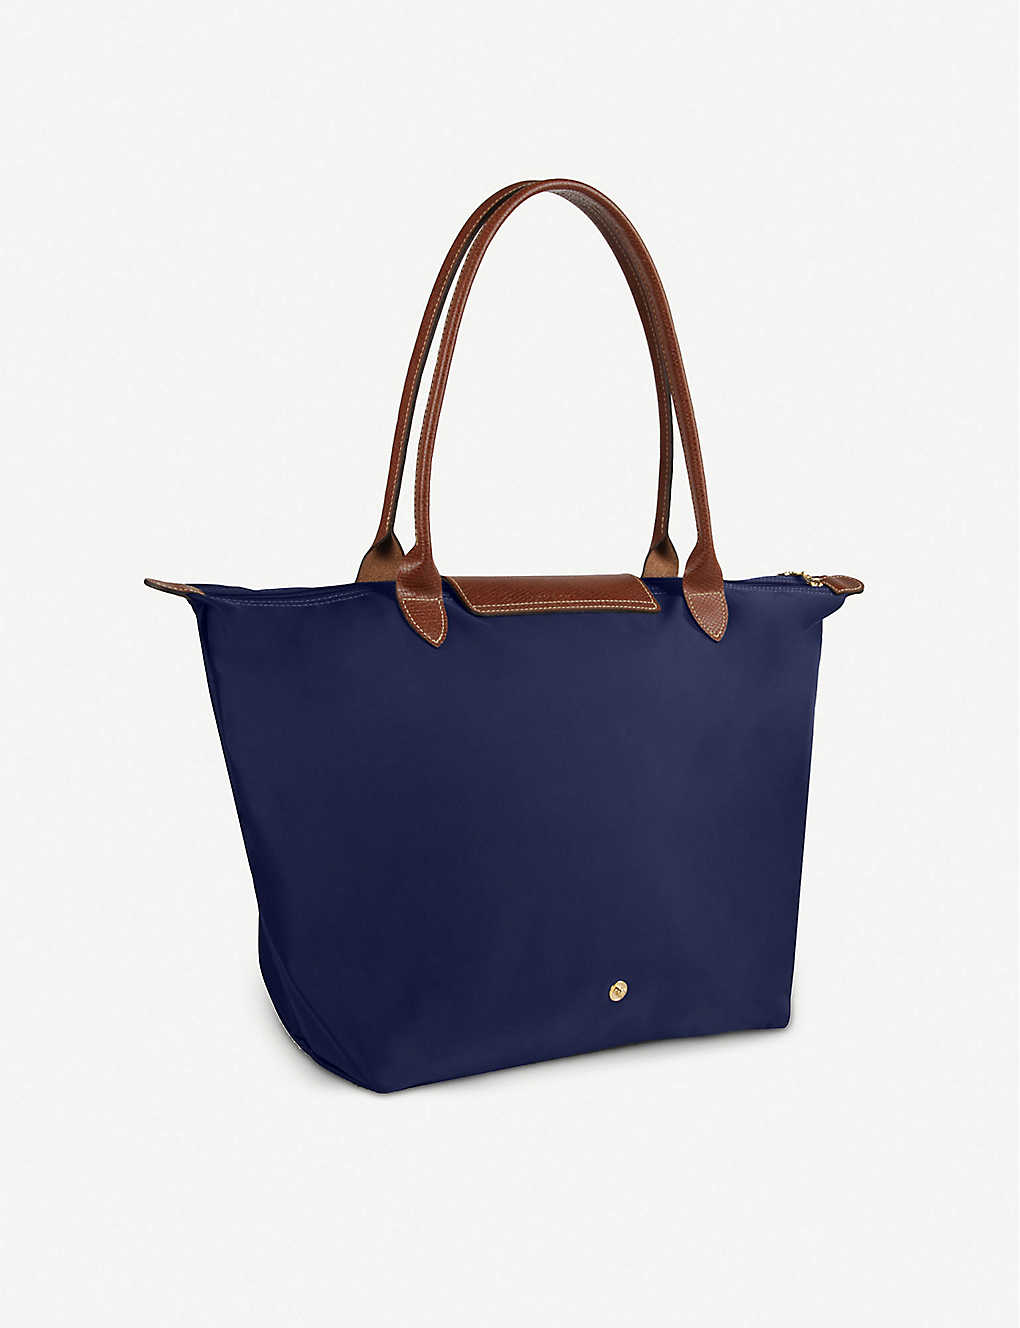 84ad4fb299024 ... Le Pliage large shopper in navy - Navy ...